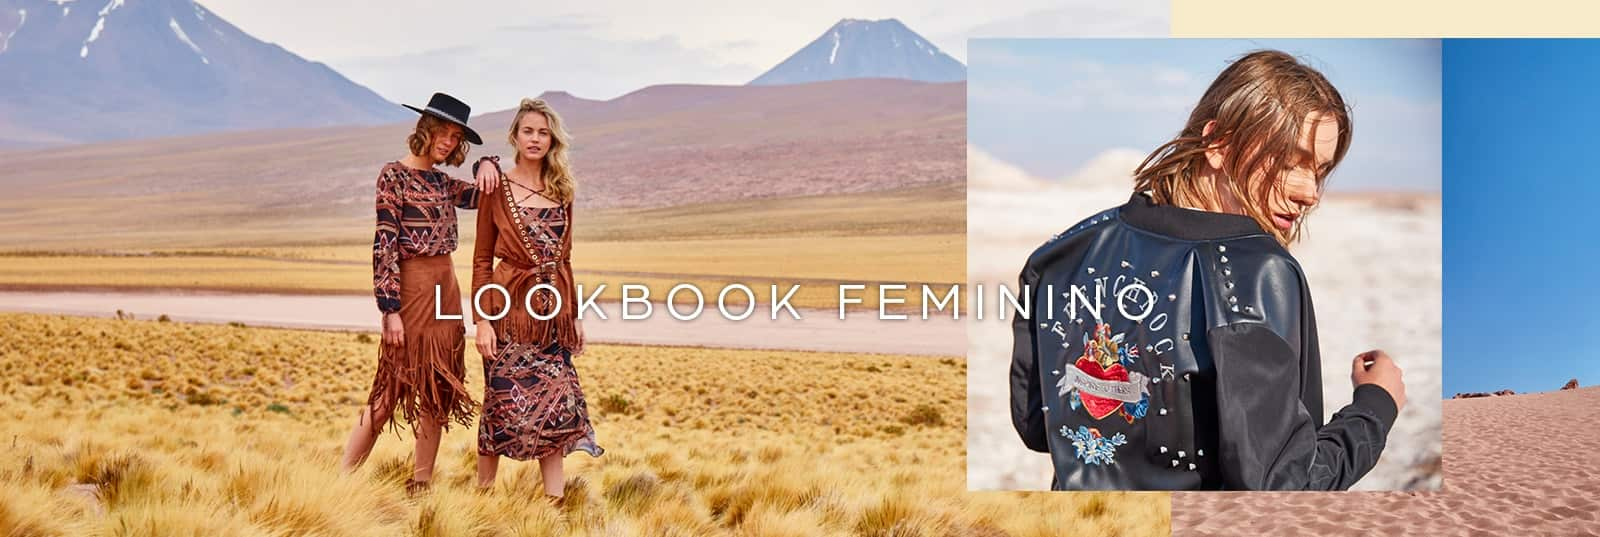 Lookbook Feminino